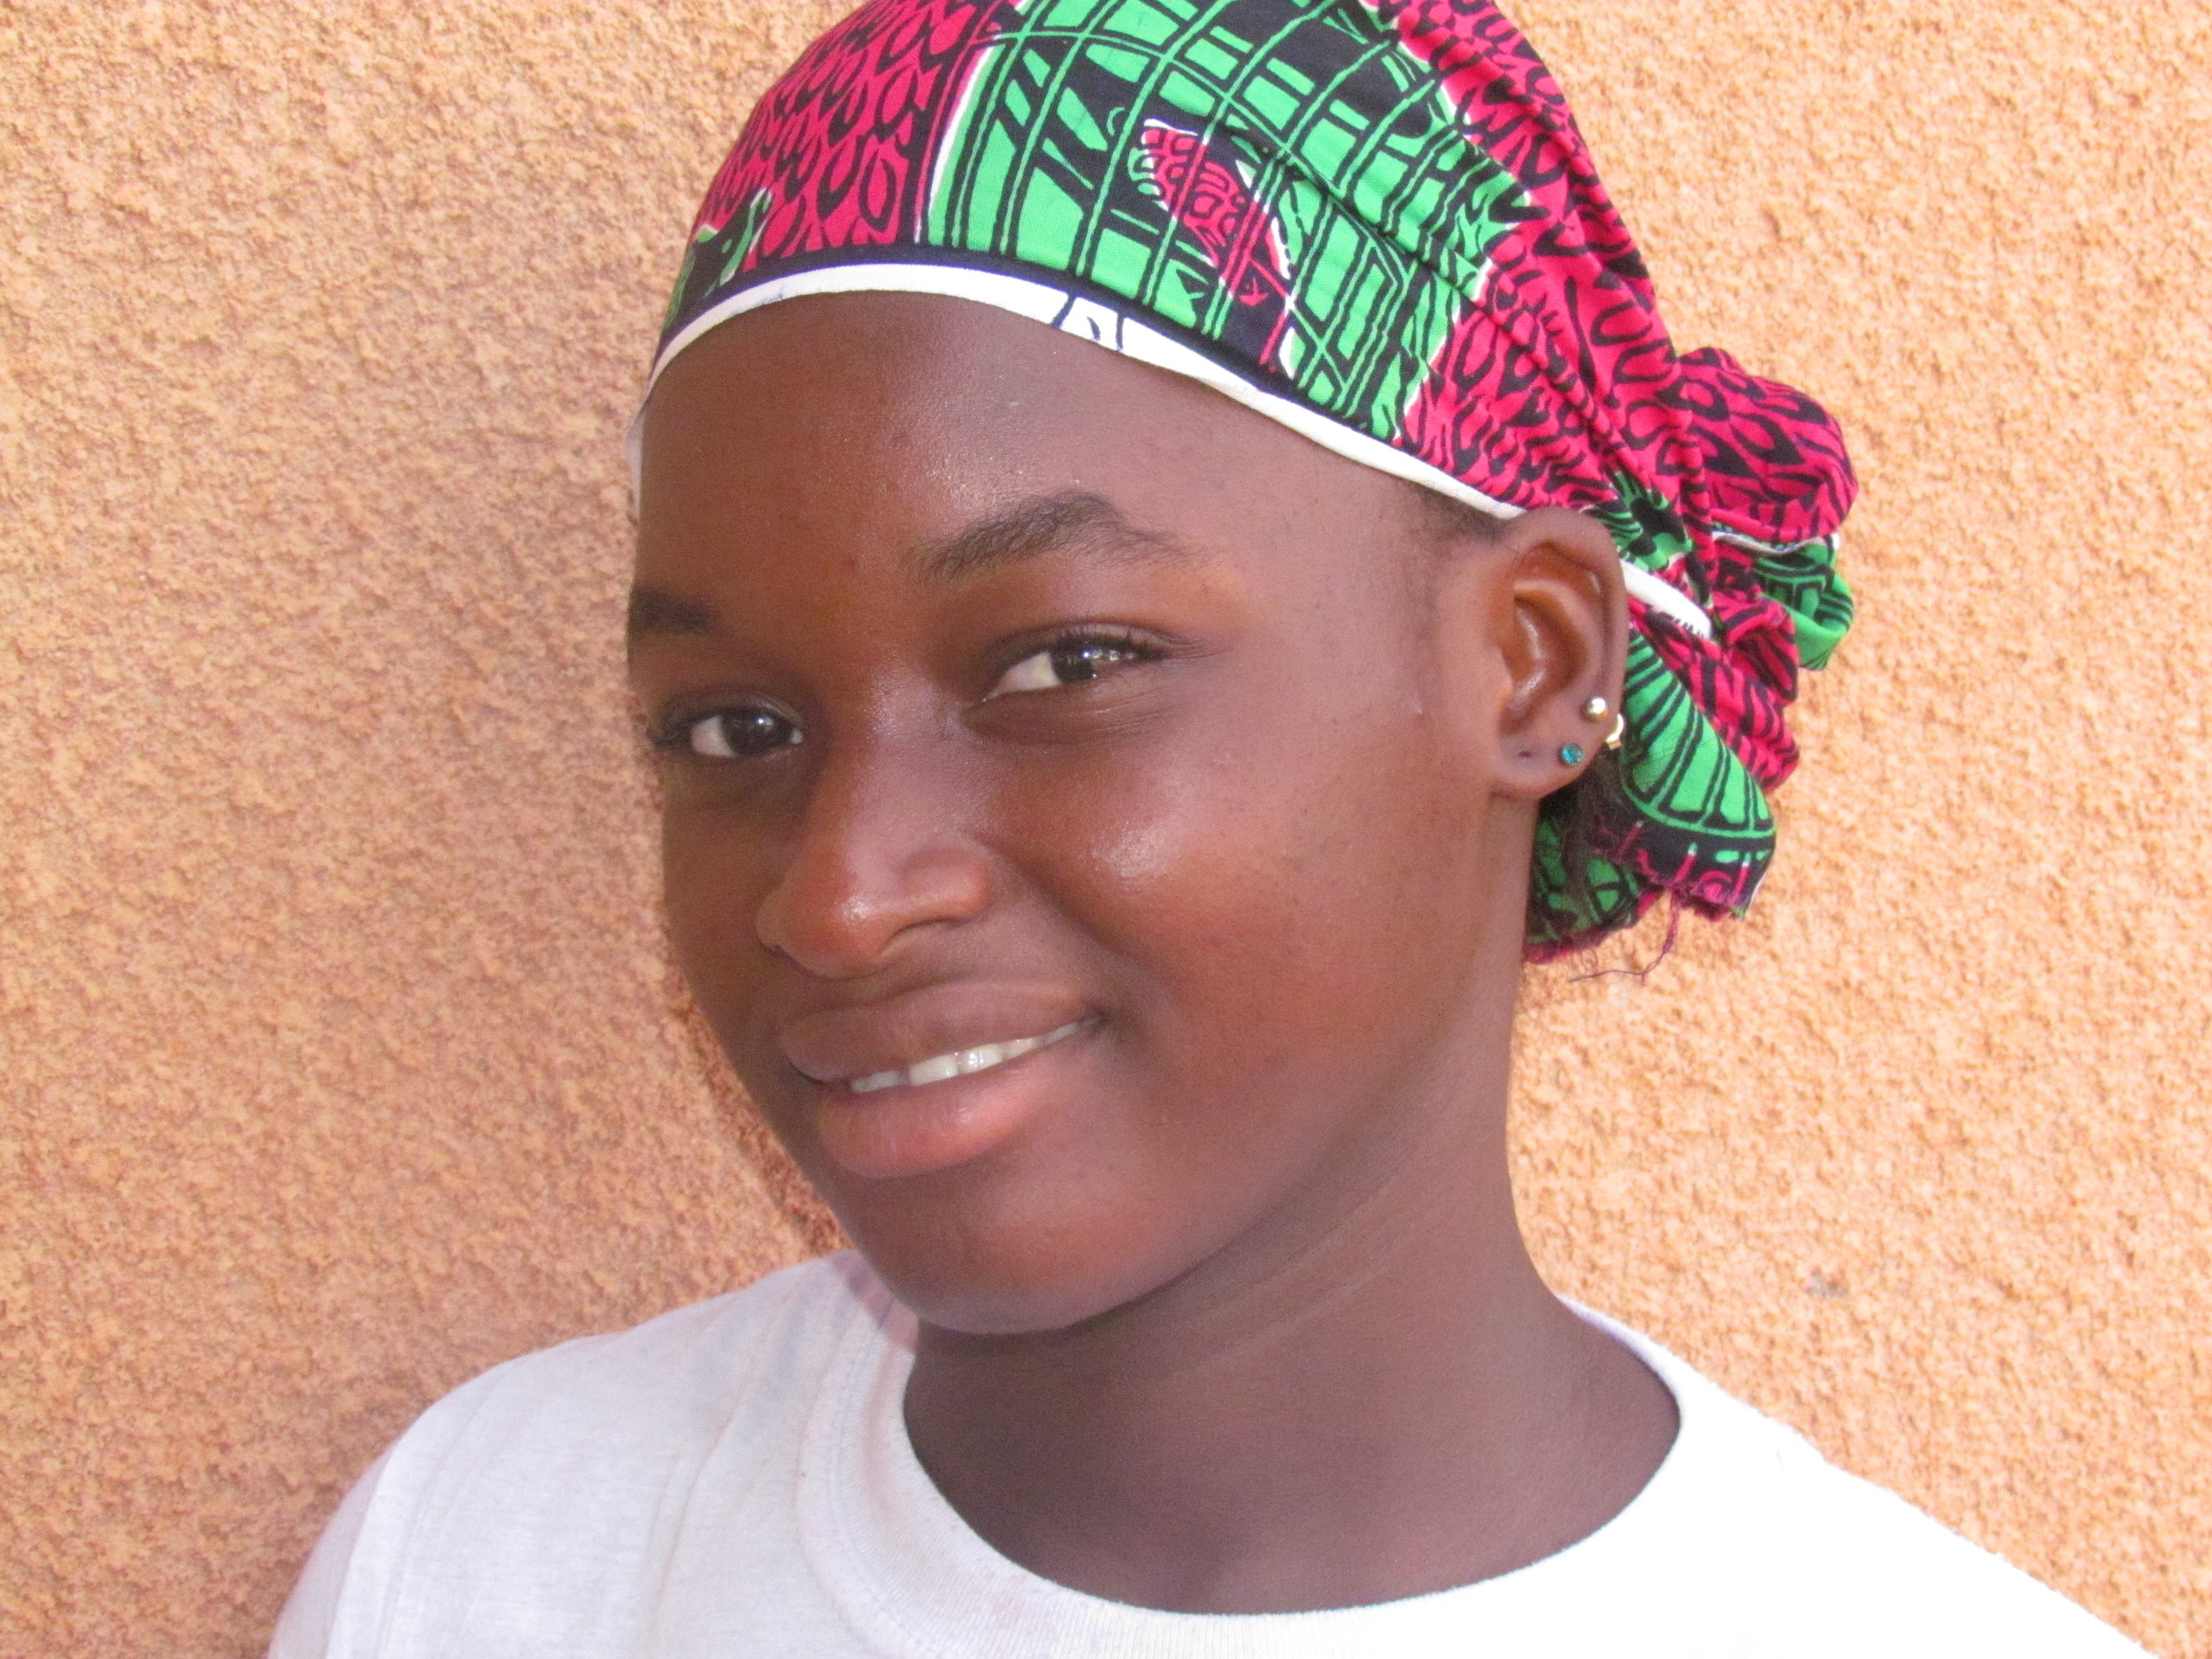 Kadia is one of our first group of Strong Woman Scholarship students, sponsored by Mary in honor of her sister Chris.